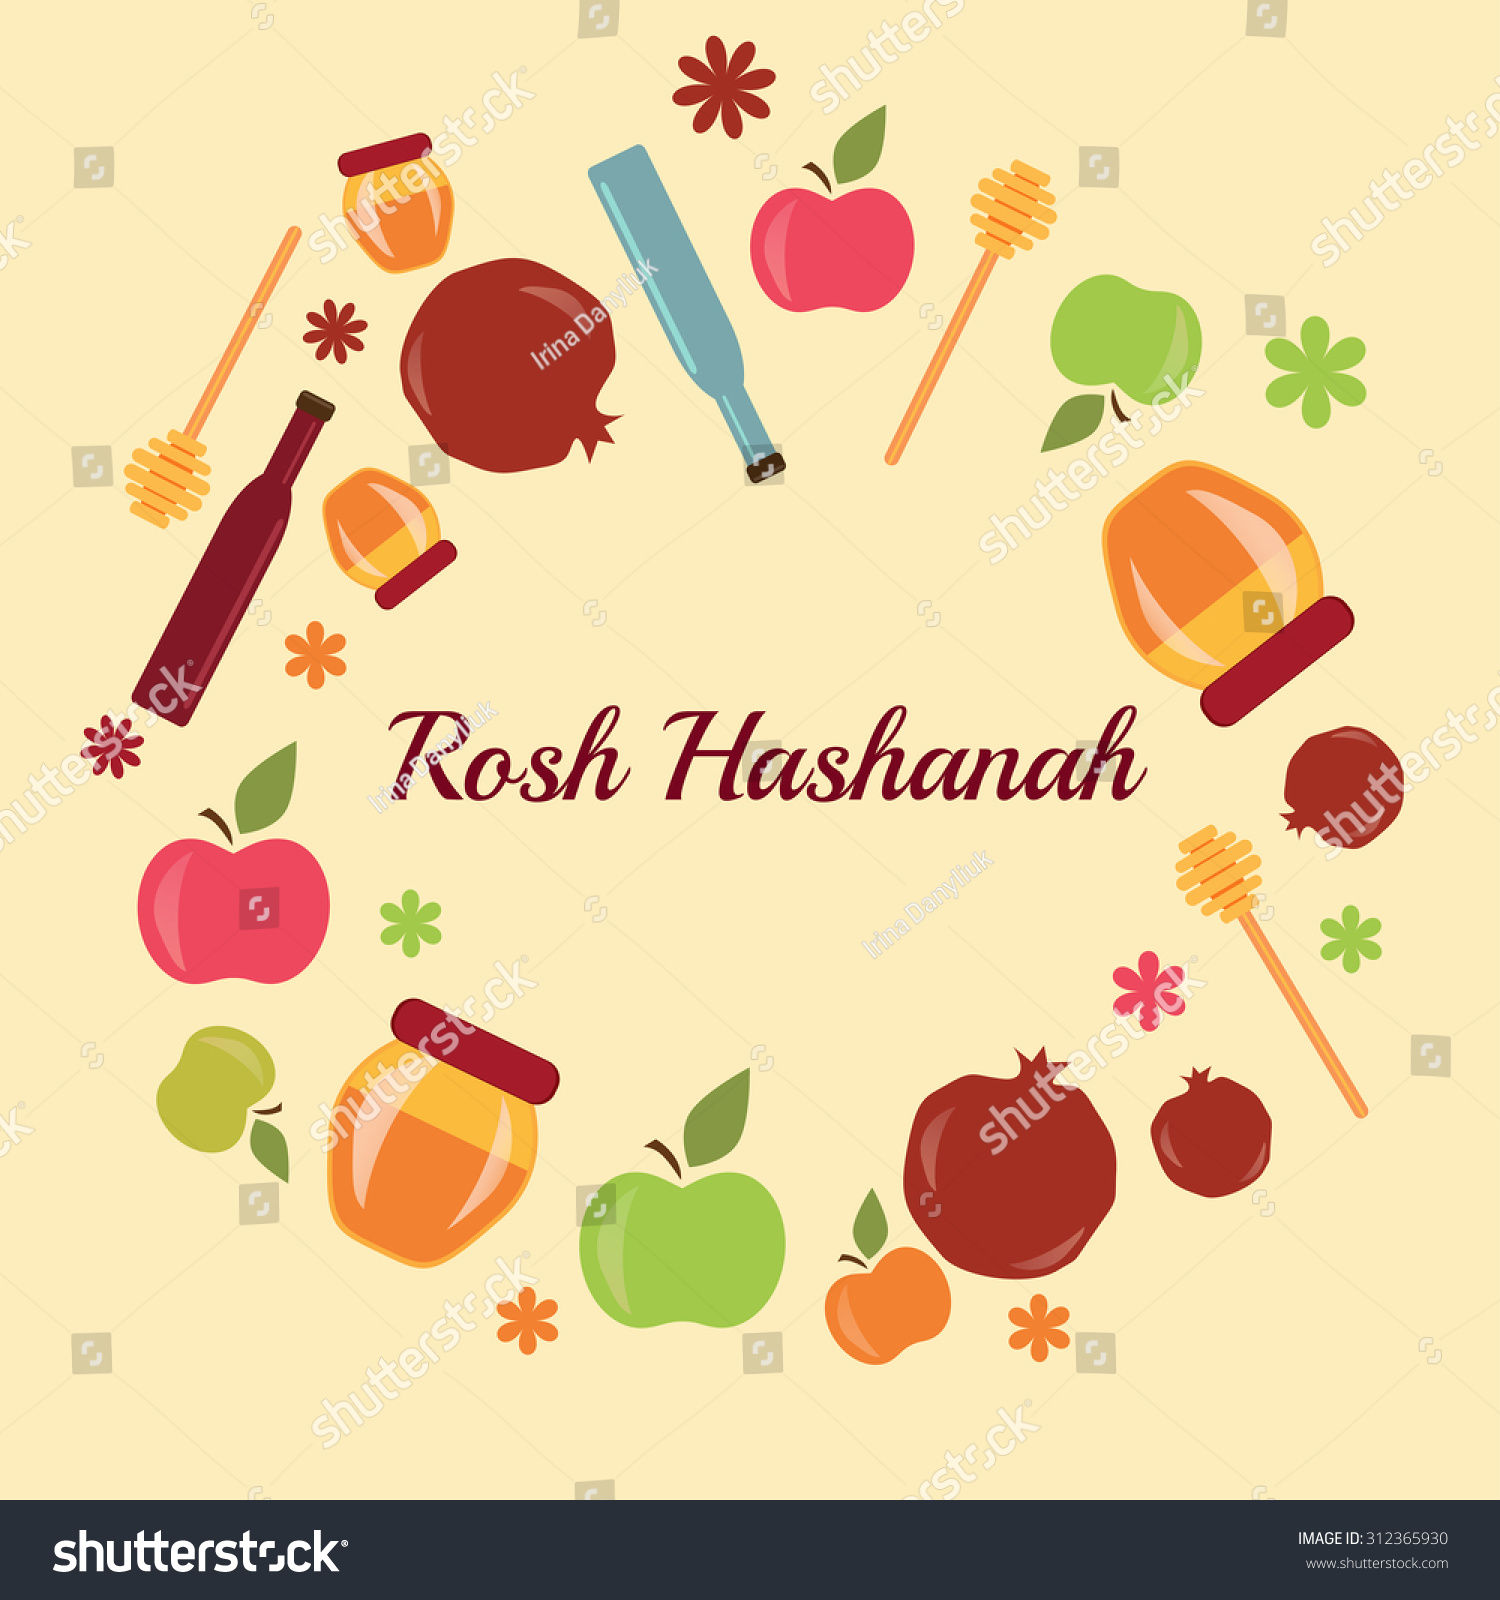 Rosh Hashanah Jewish New Year Greeting Stock Vector Royalty Free